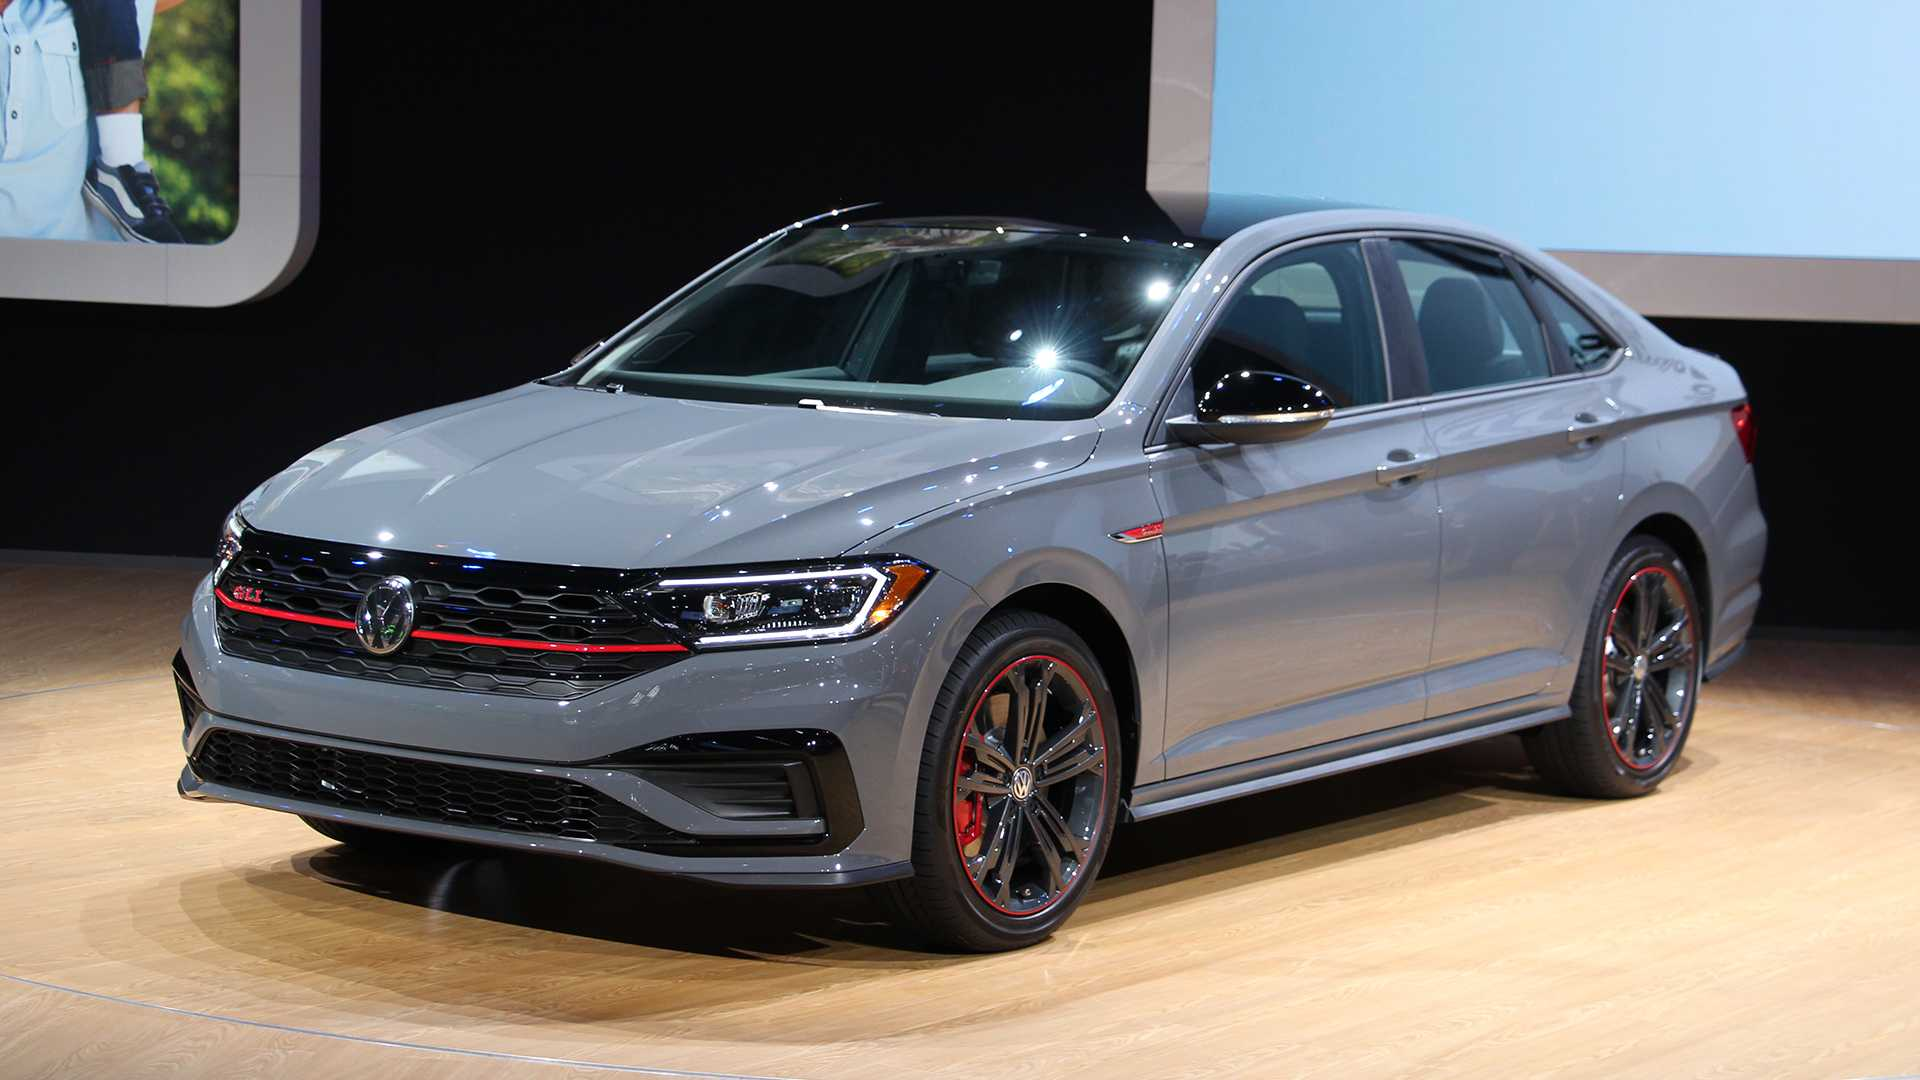 85 Gallery of Volkswagen Jetta 2020 Usa Release with Volkswagen Jetta 2020 Usa